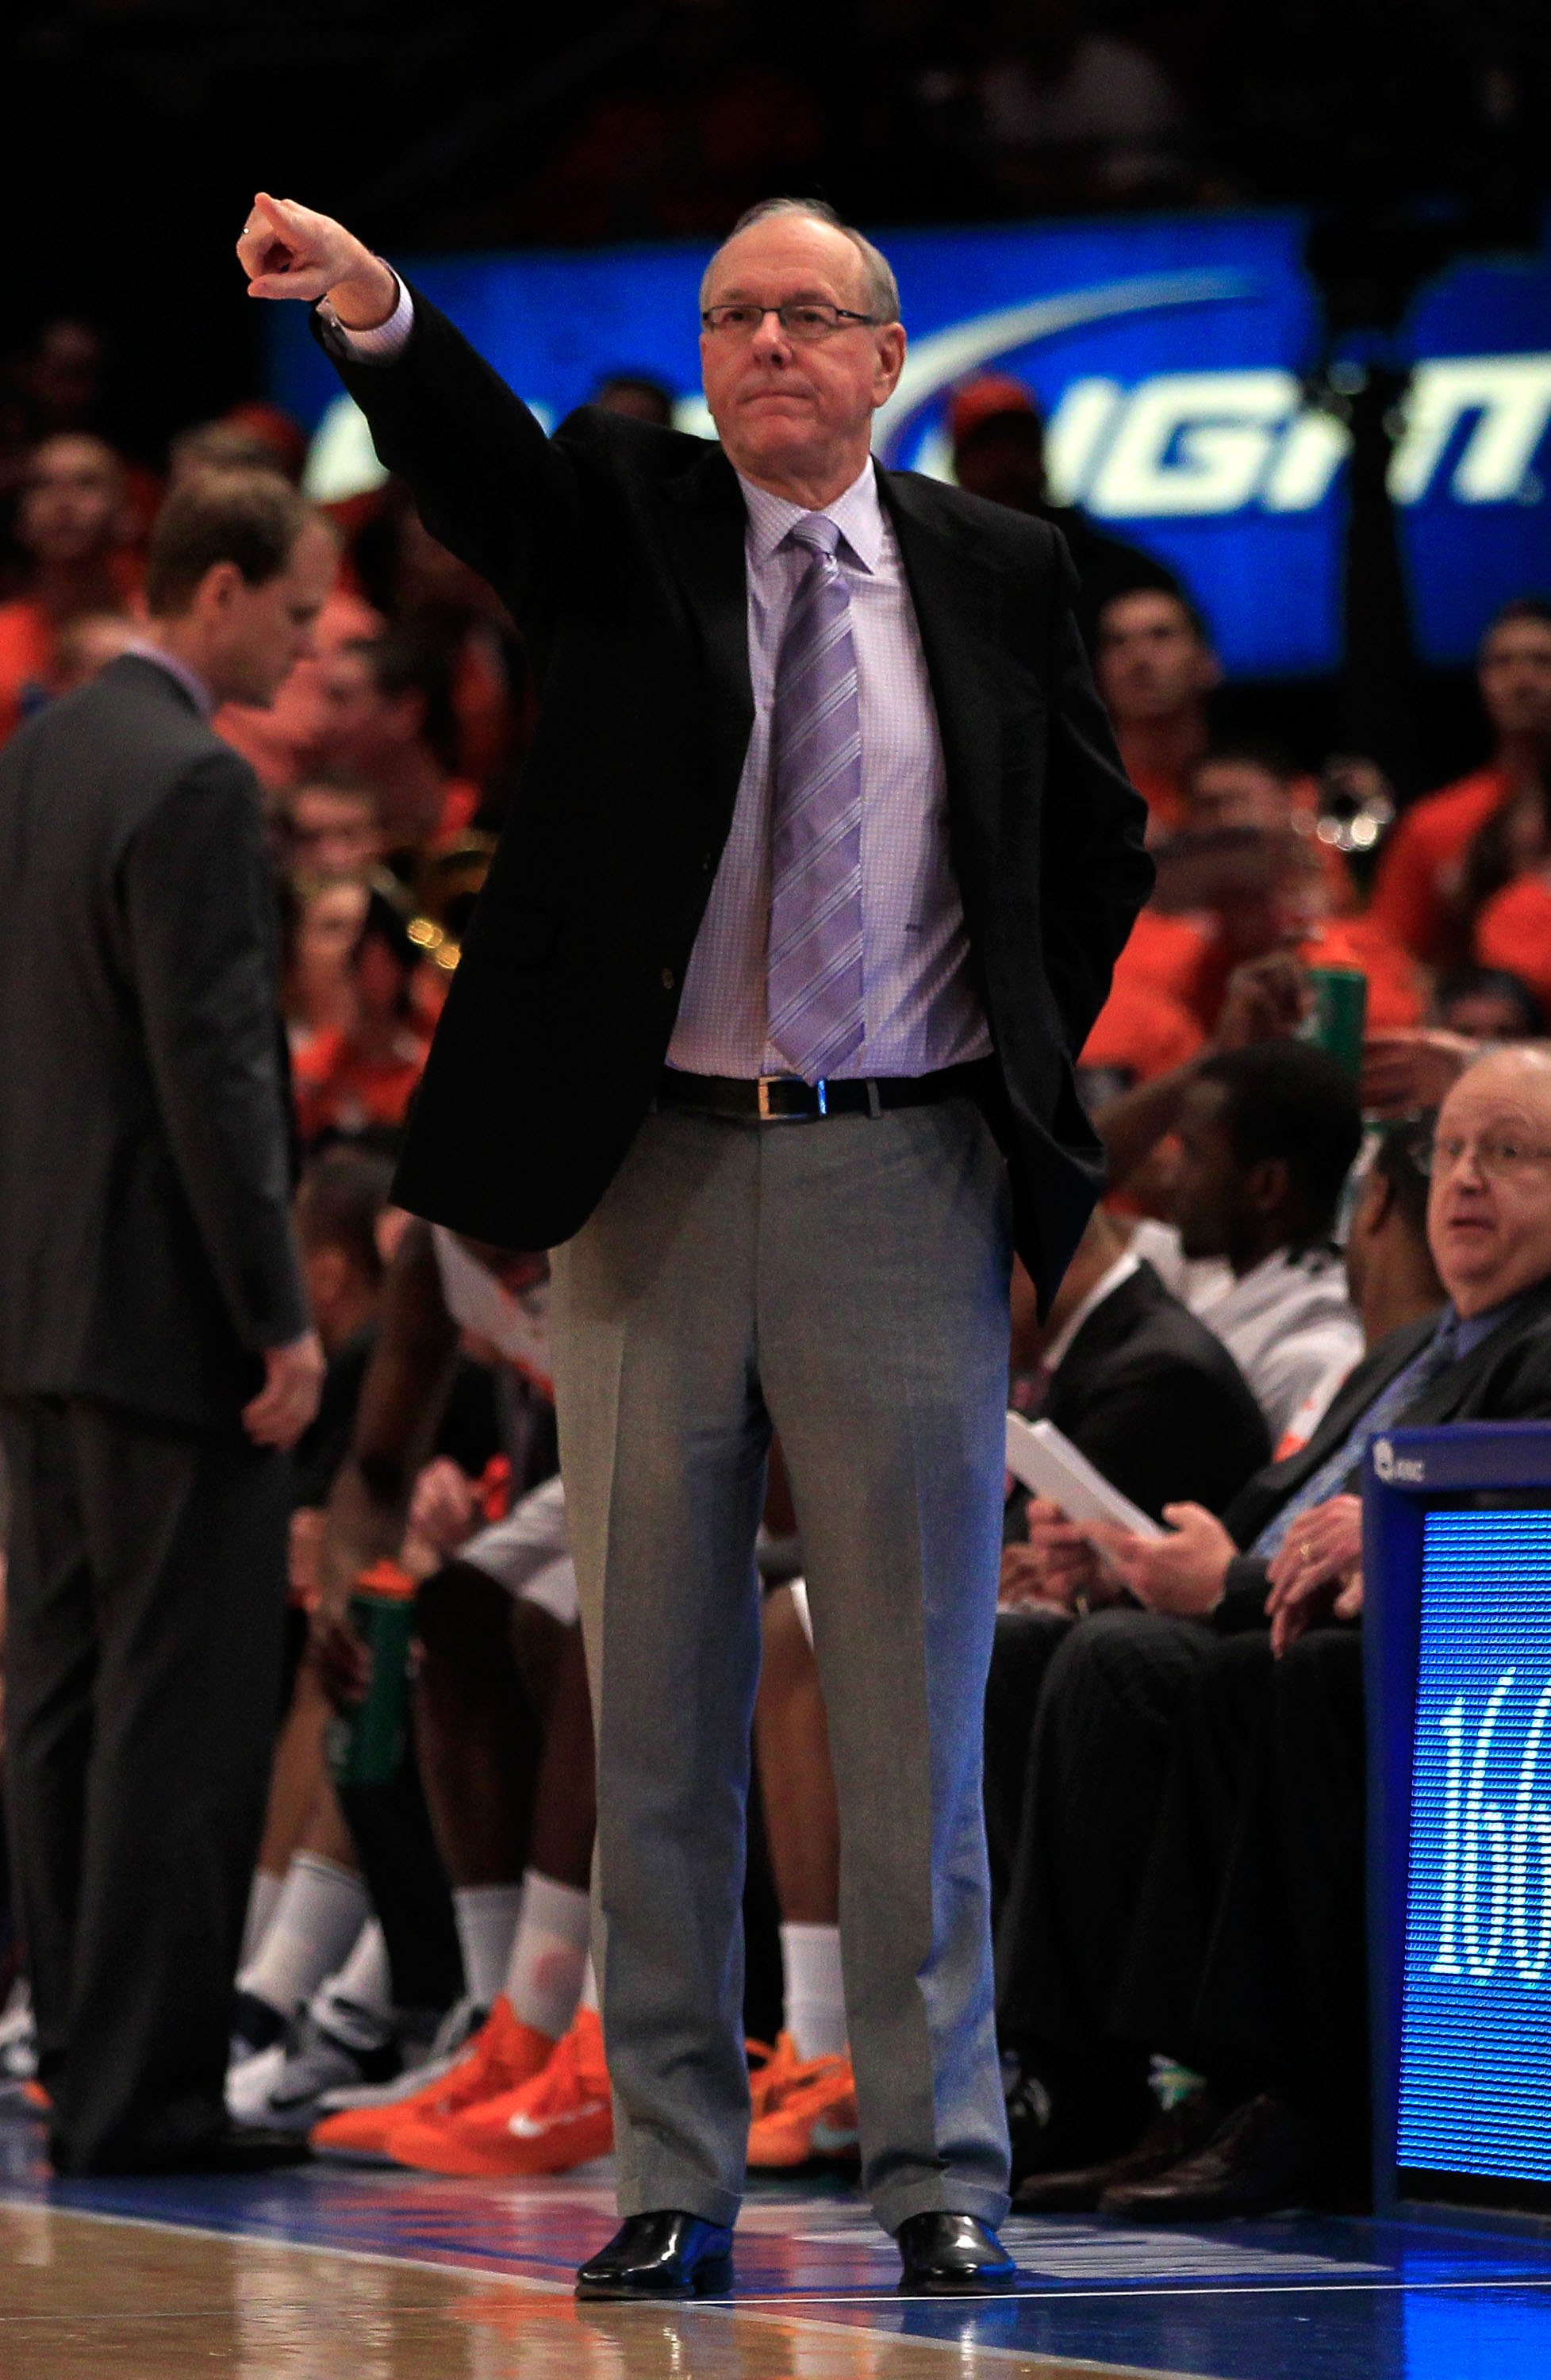 NEW YORK, NY - MARCH 11: Head coach Jim Boeheim of the Syracuse Orange gestures from the bench during the game against the Connecticut Huskies during the semifinals of the 2011 Big East Men's Basketball Tournament presented by American Eagle Outfitters at